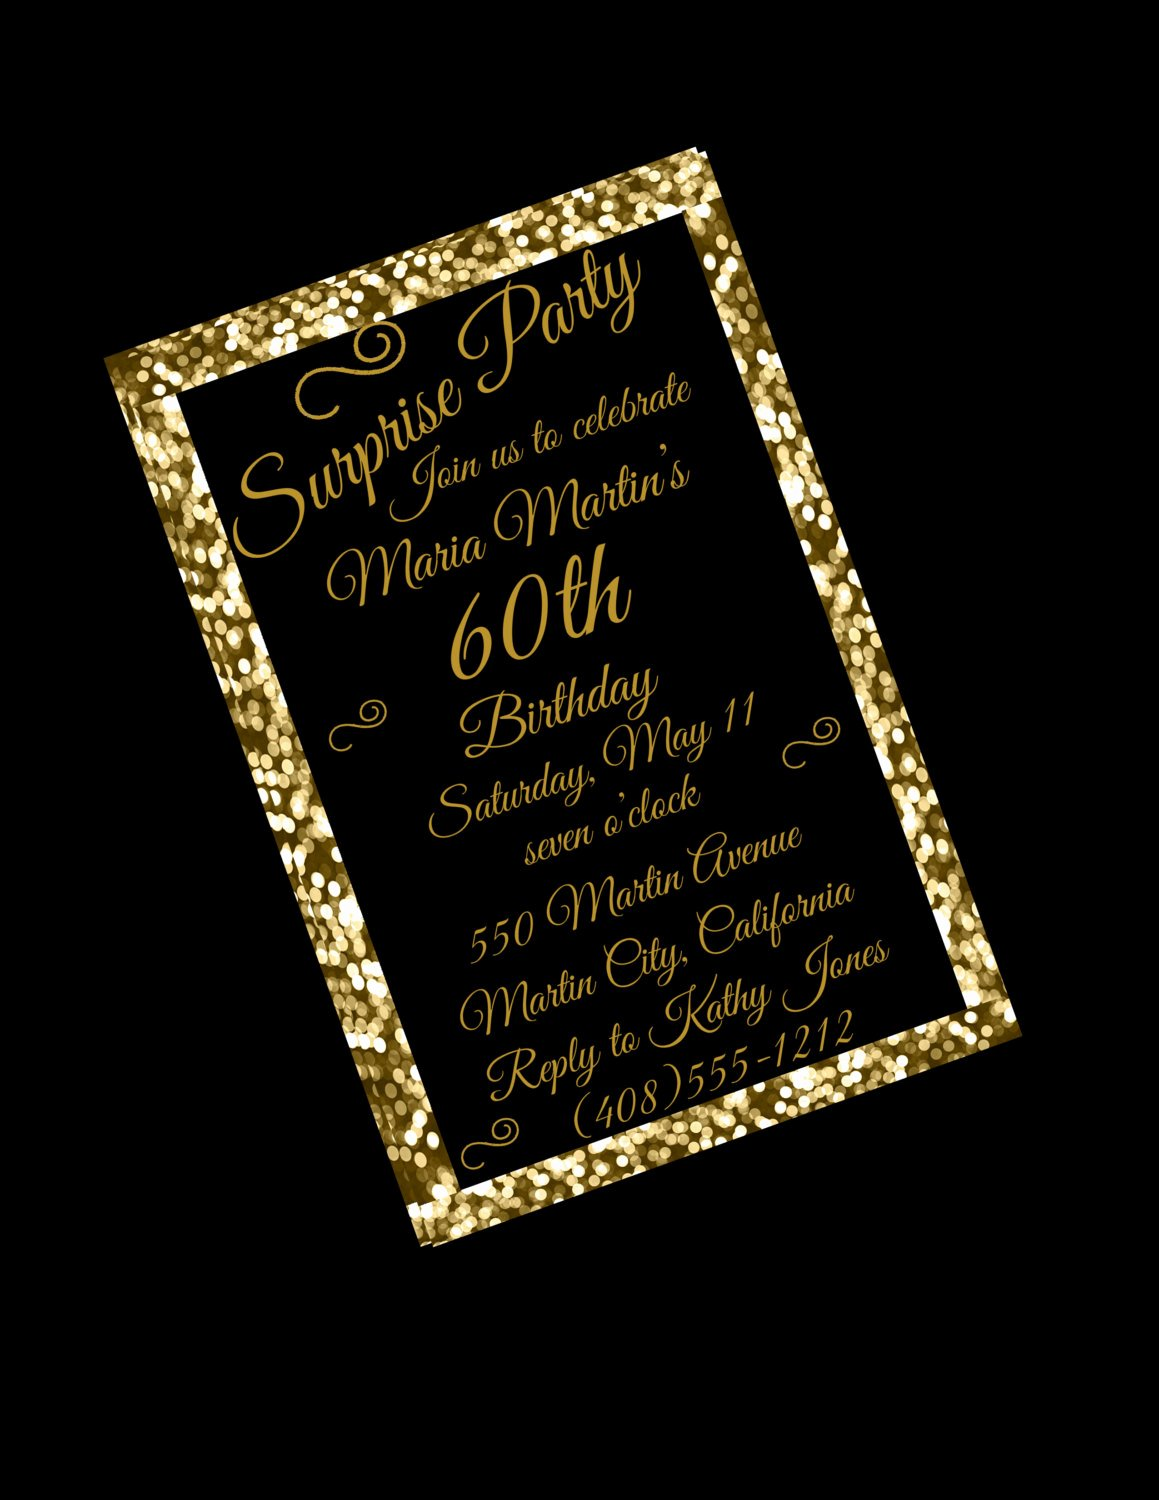 60 Th Birthday Invites Luxury 60th Birthday Invitation 60th Birthday Party 60th Surprise